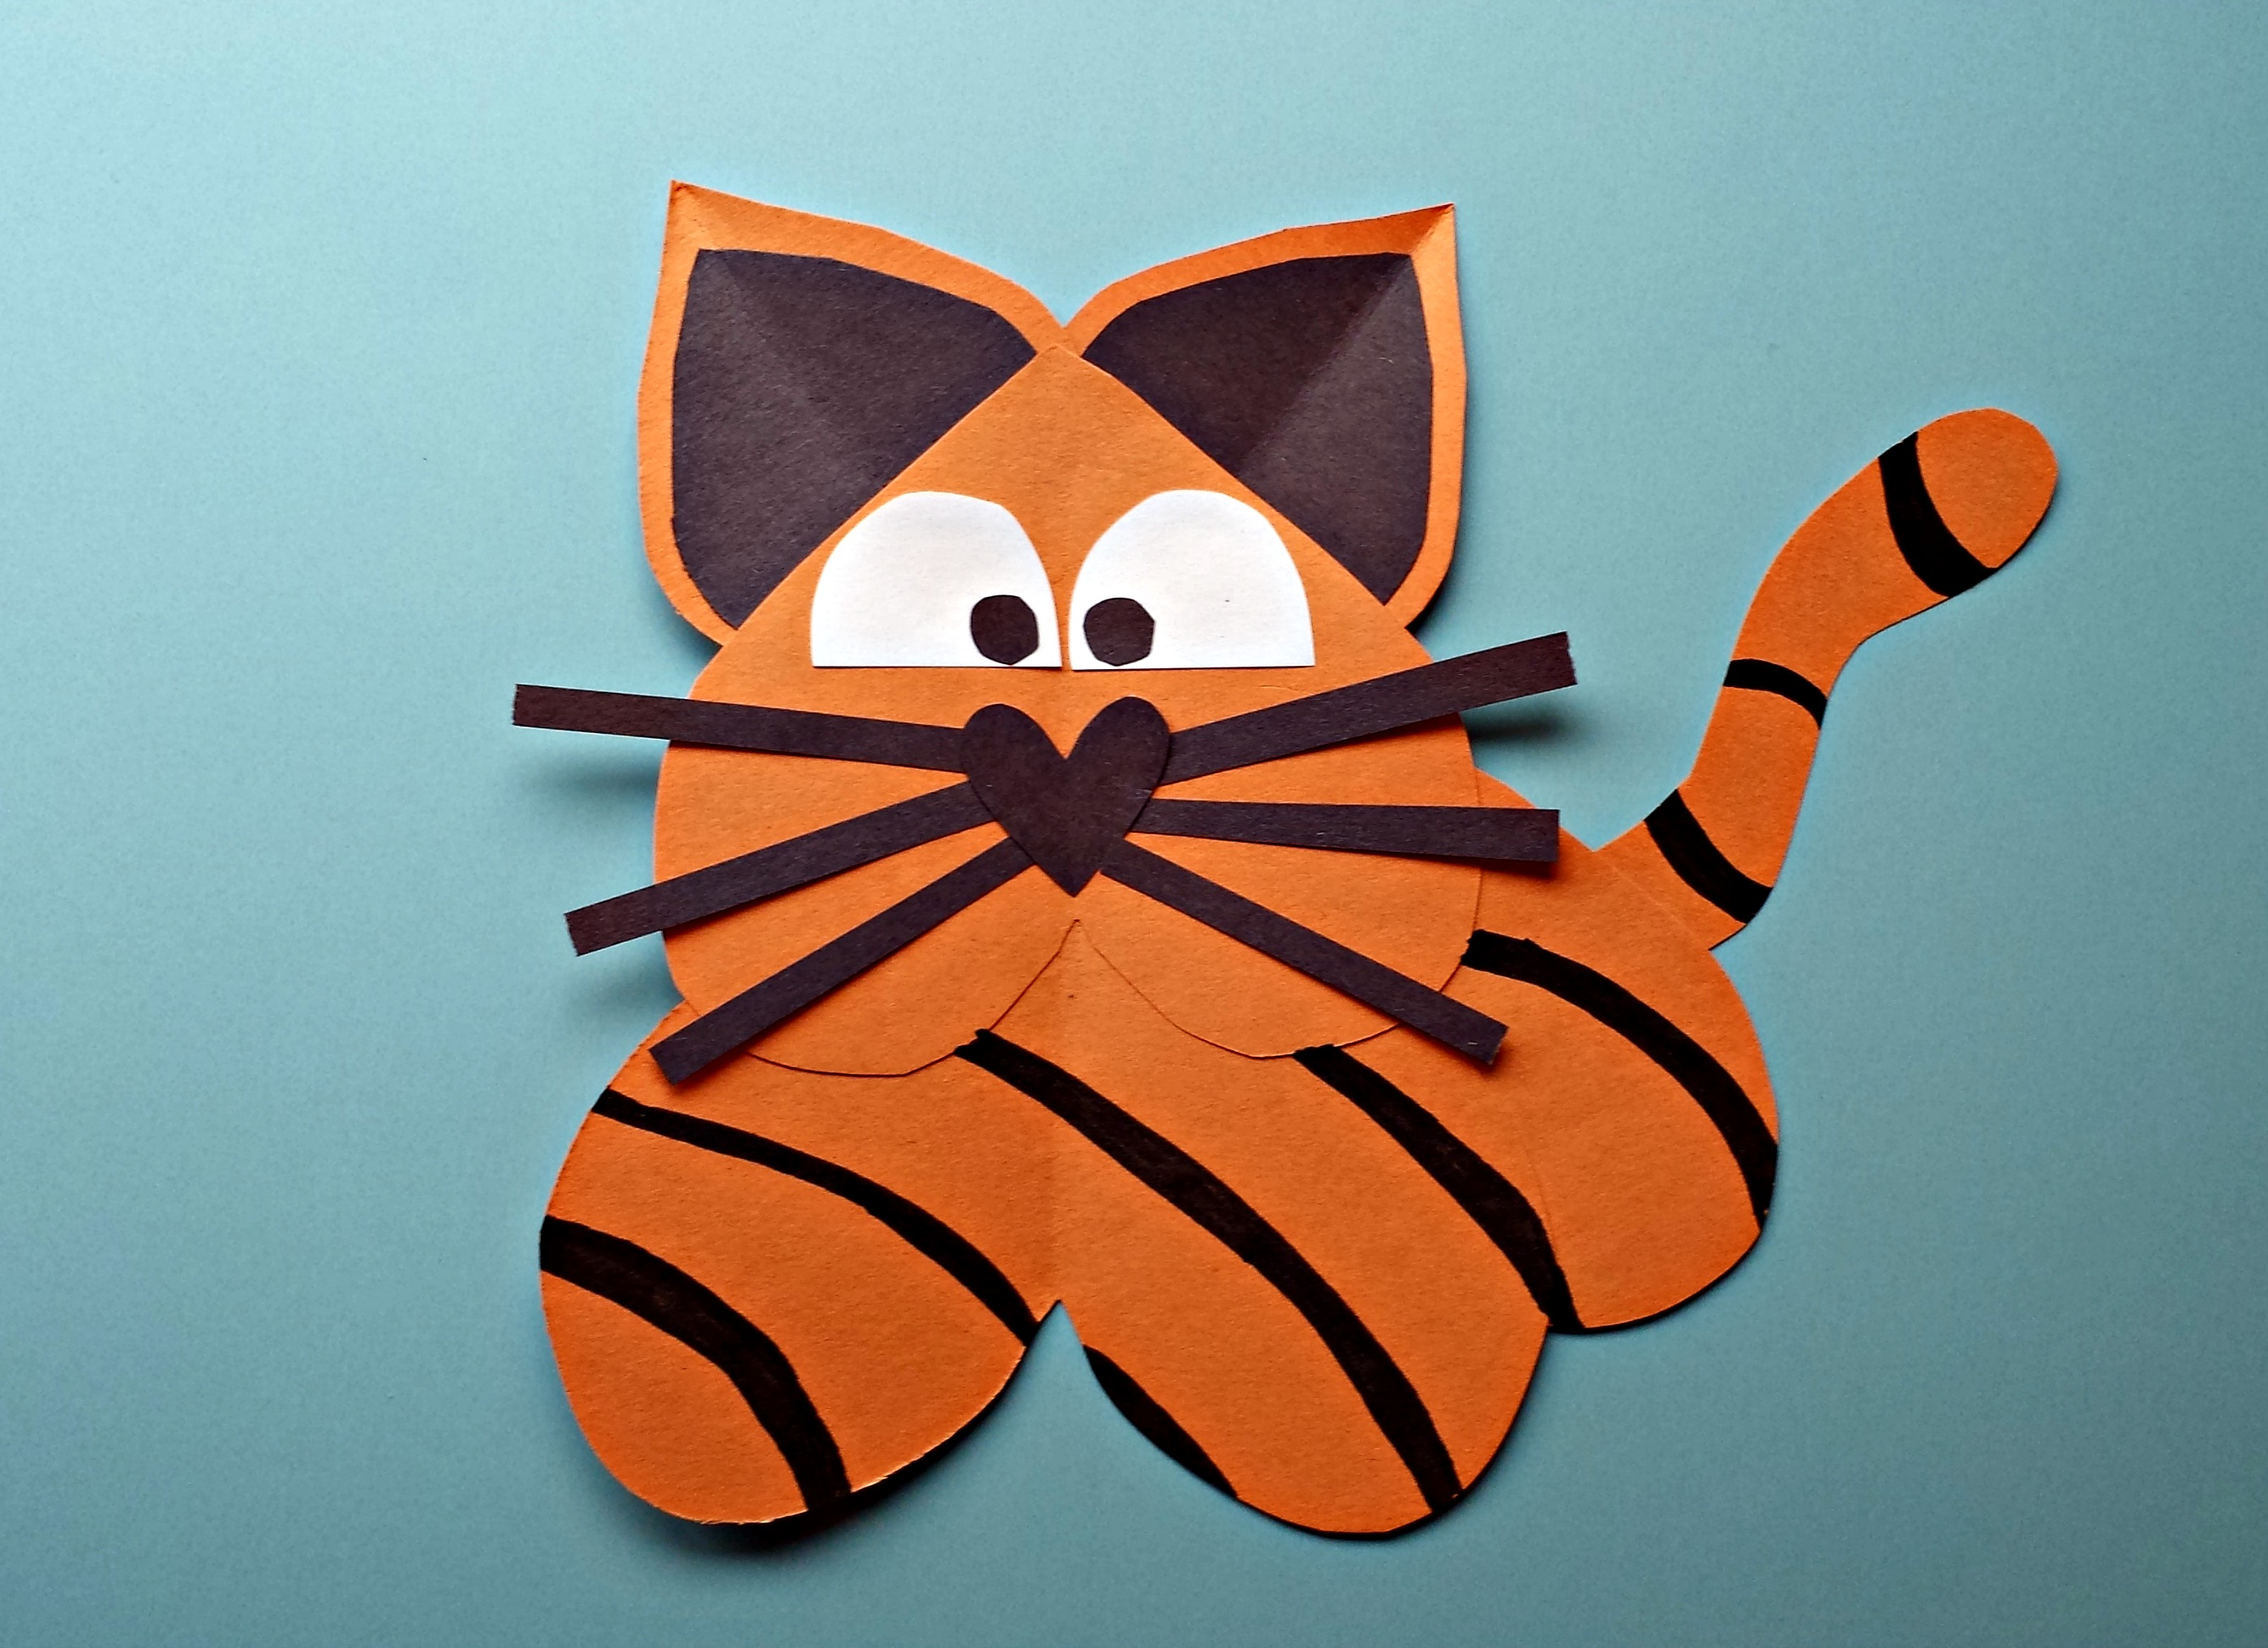 Heart Tiger Craft For Kids - Crafty Morning